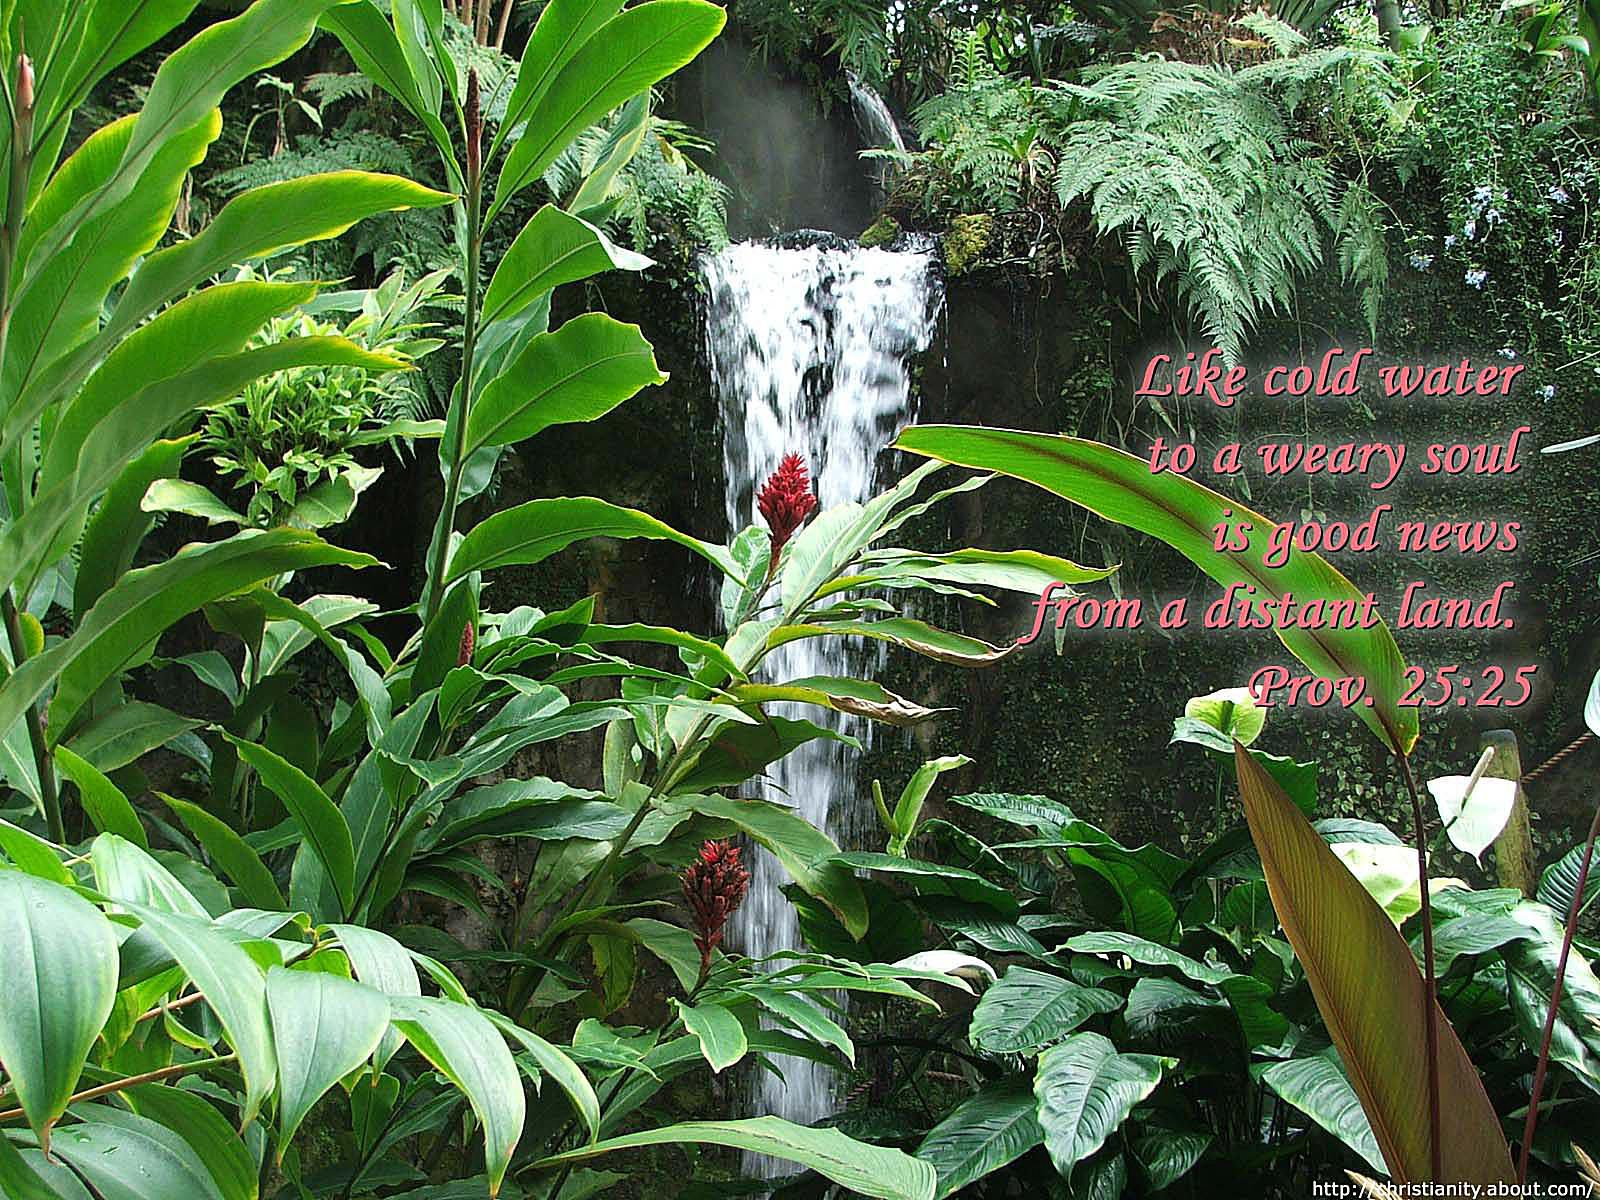 Cool Waterfall with bible verse